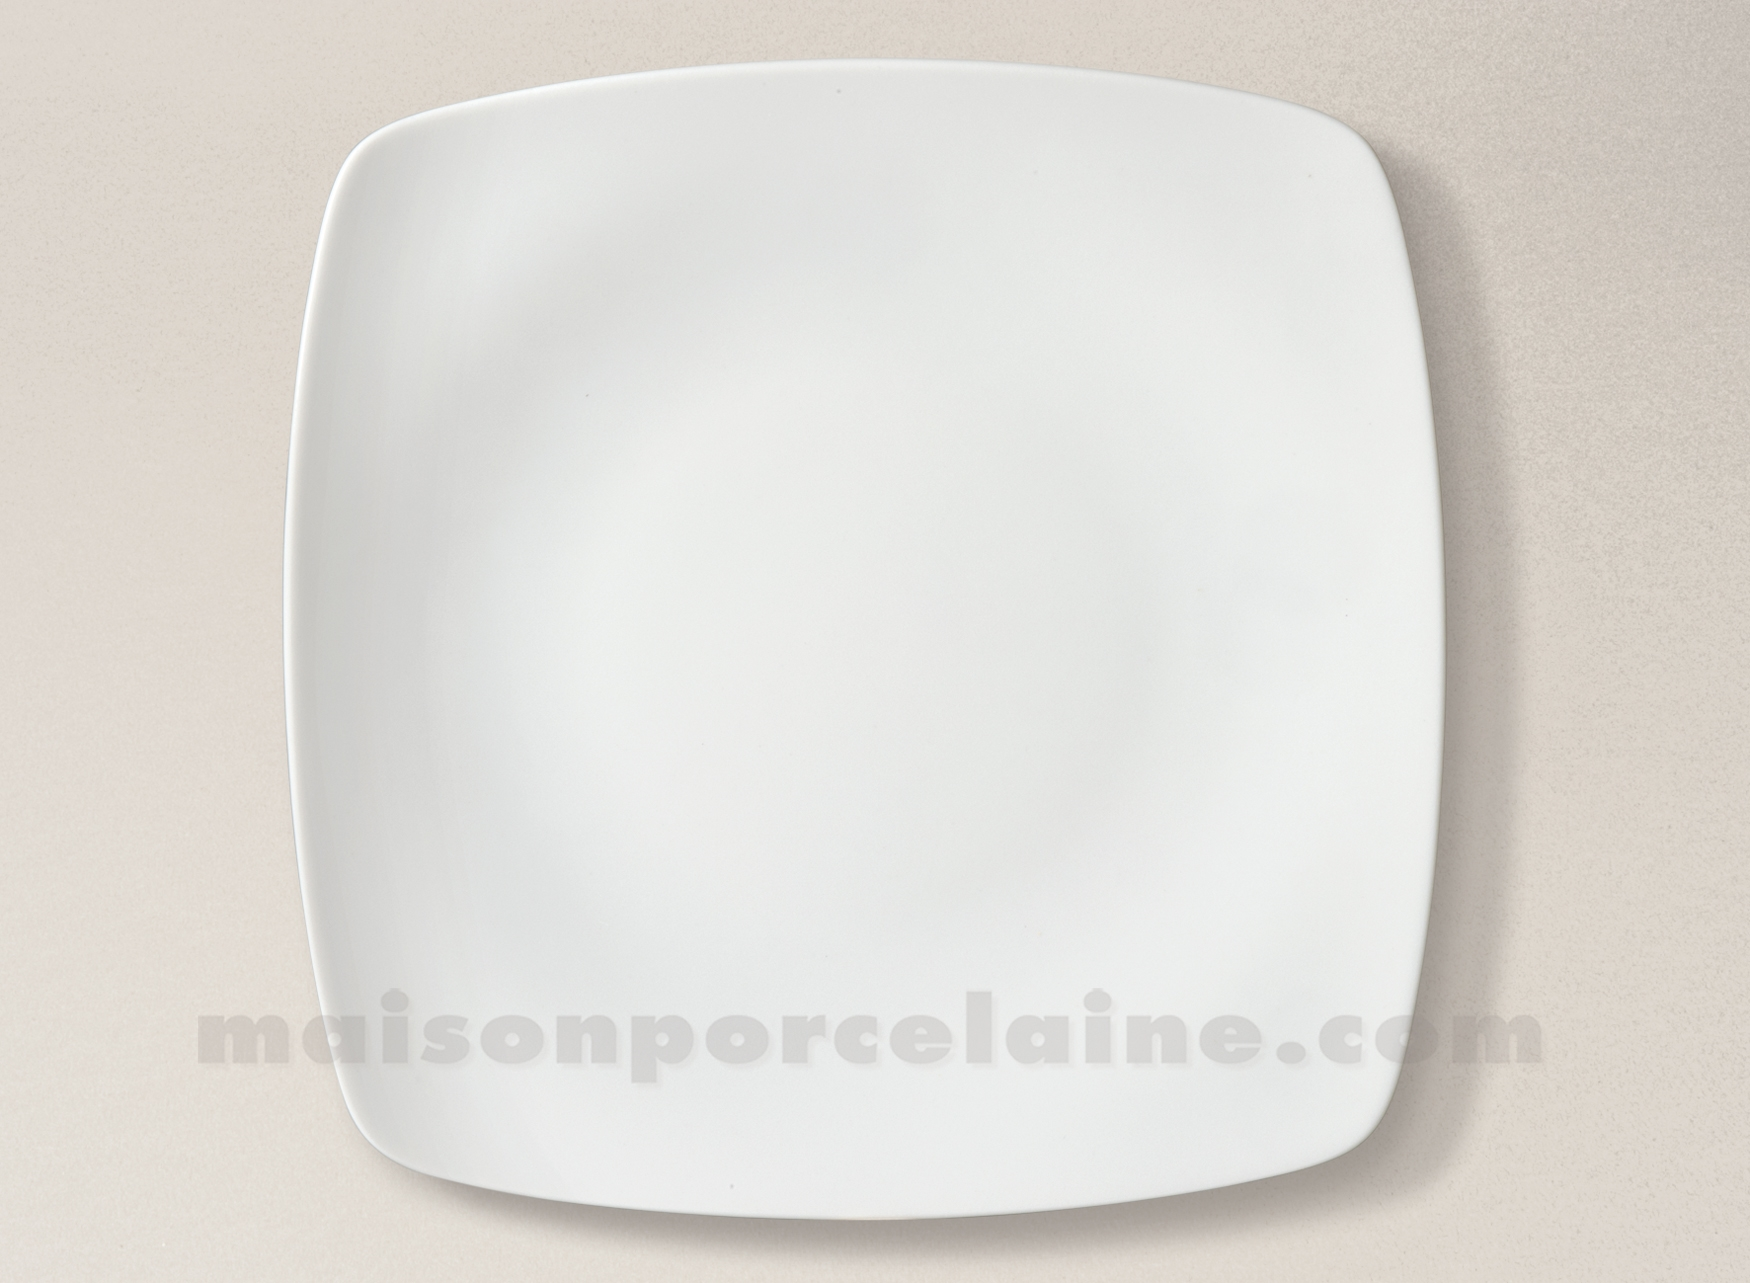 assiette carree plate porcelaine blanche sahara 25x25 maison de la porcelaine. Black Bedroom Furniture Sets. Home Design Ideas